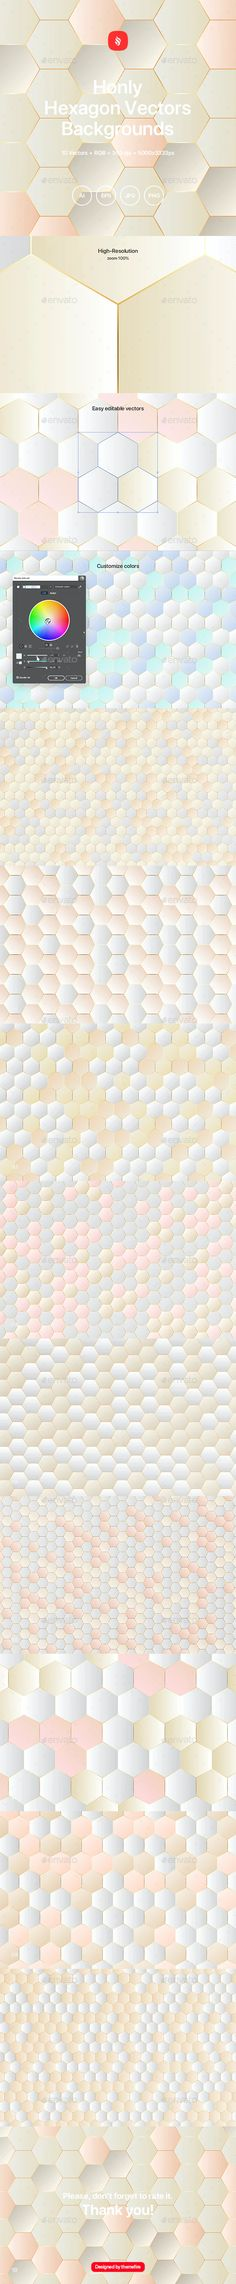 Honly - Hexagon Vector Backgrounds by themefire | GraphicRiver Line Background, Vector Background, Background Images Wallpapers, Backgrounds, Hexagon Vector, Vector File, Honeycomb, Instagram Story, Geometry